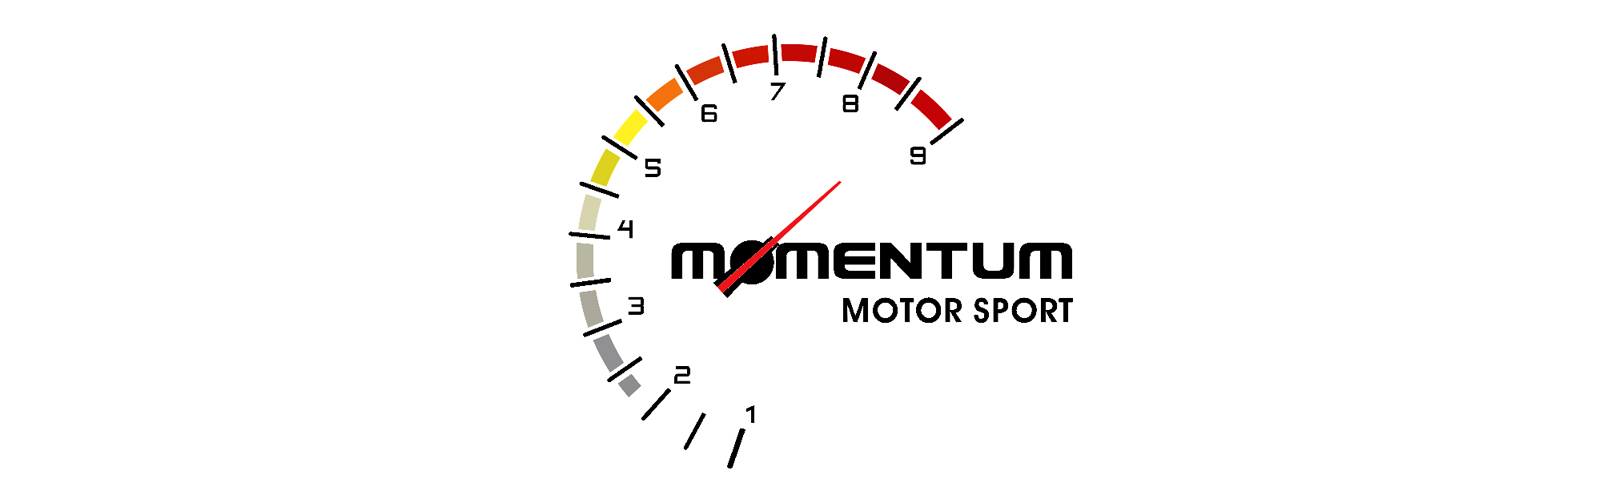 http://www.momentummotorsport.co.uk/company.html